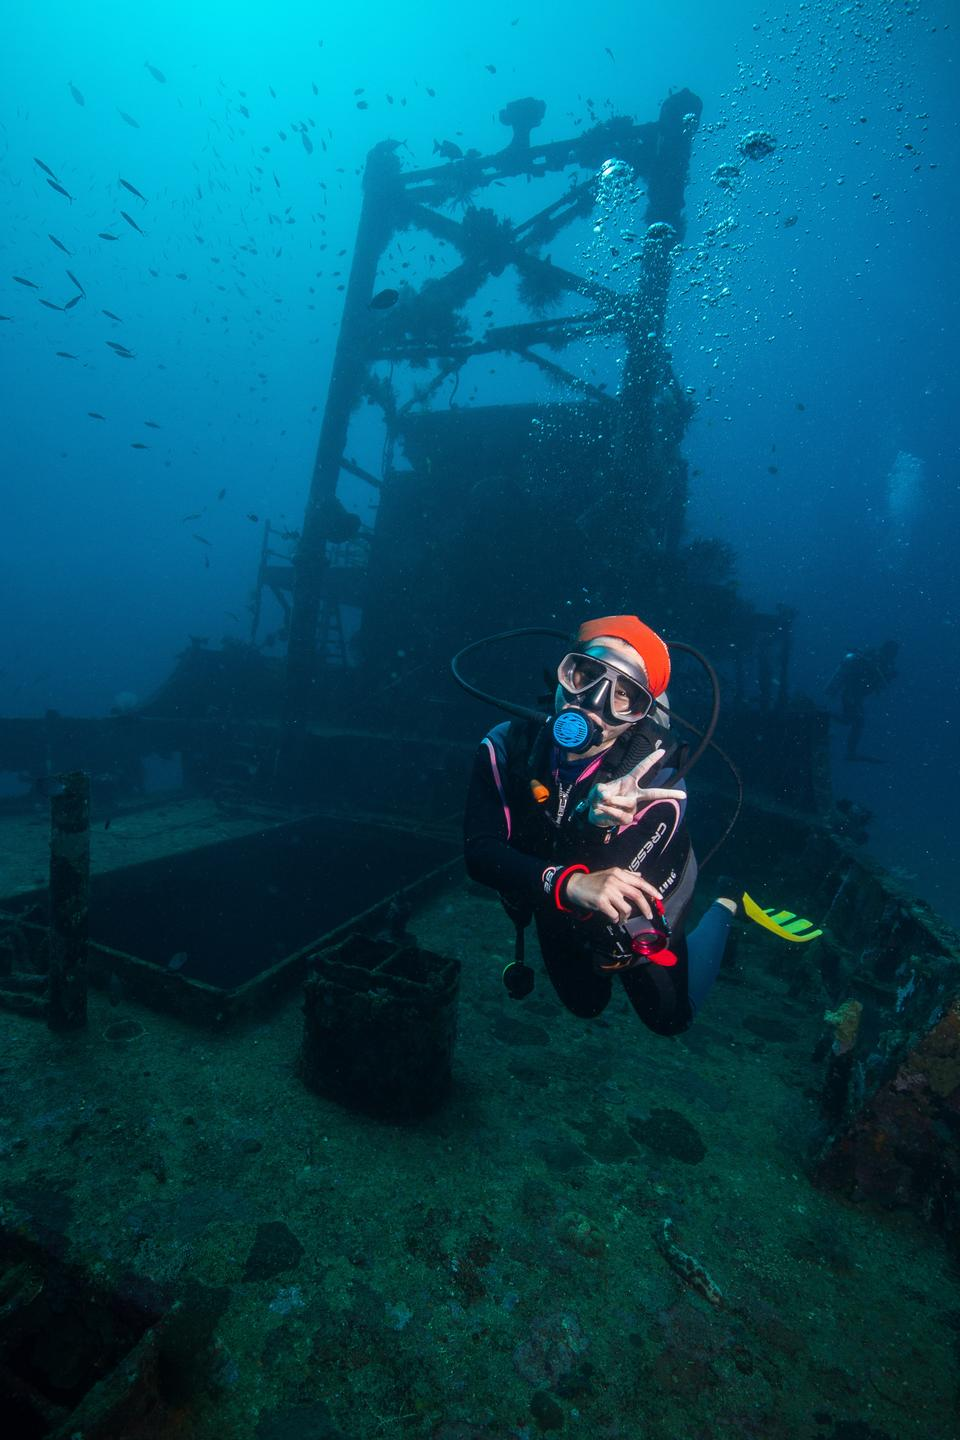 Scuba diver on the Camia wreck in The Philippines